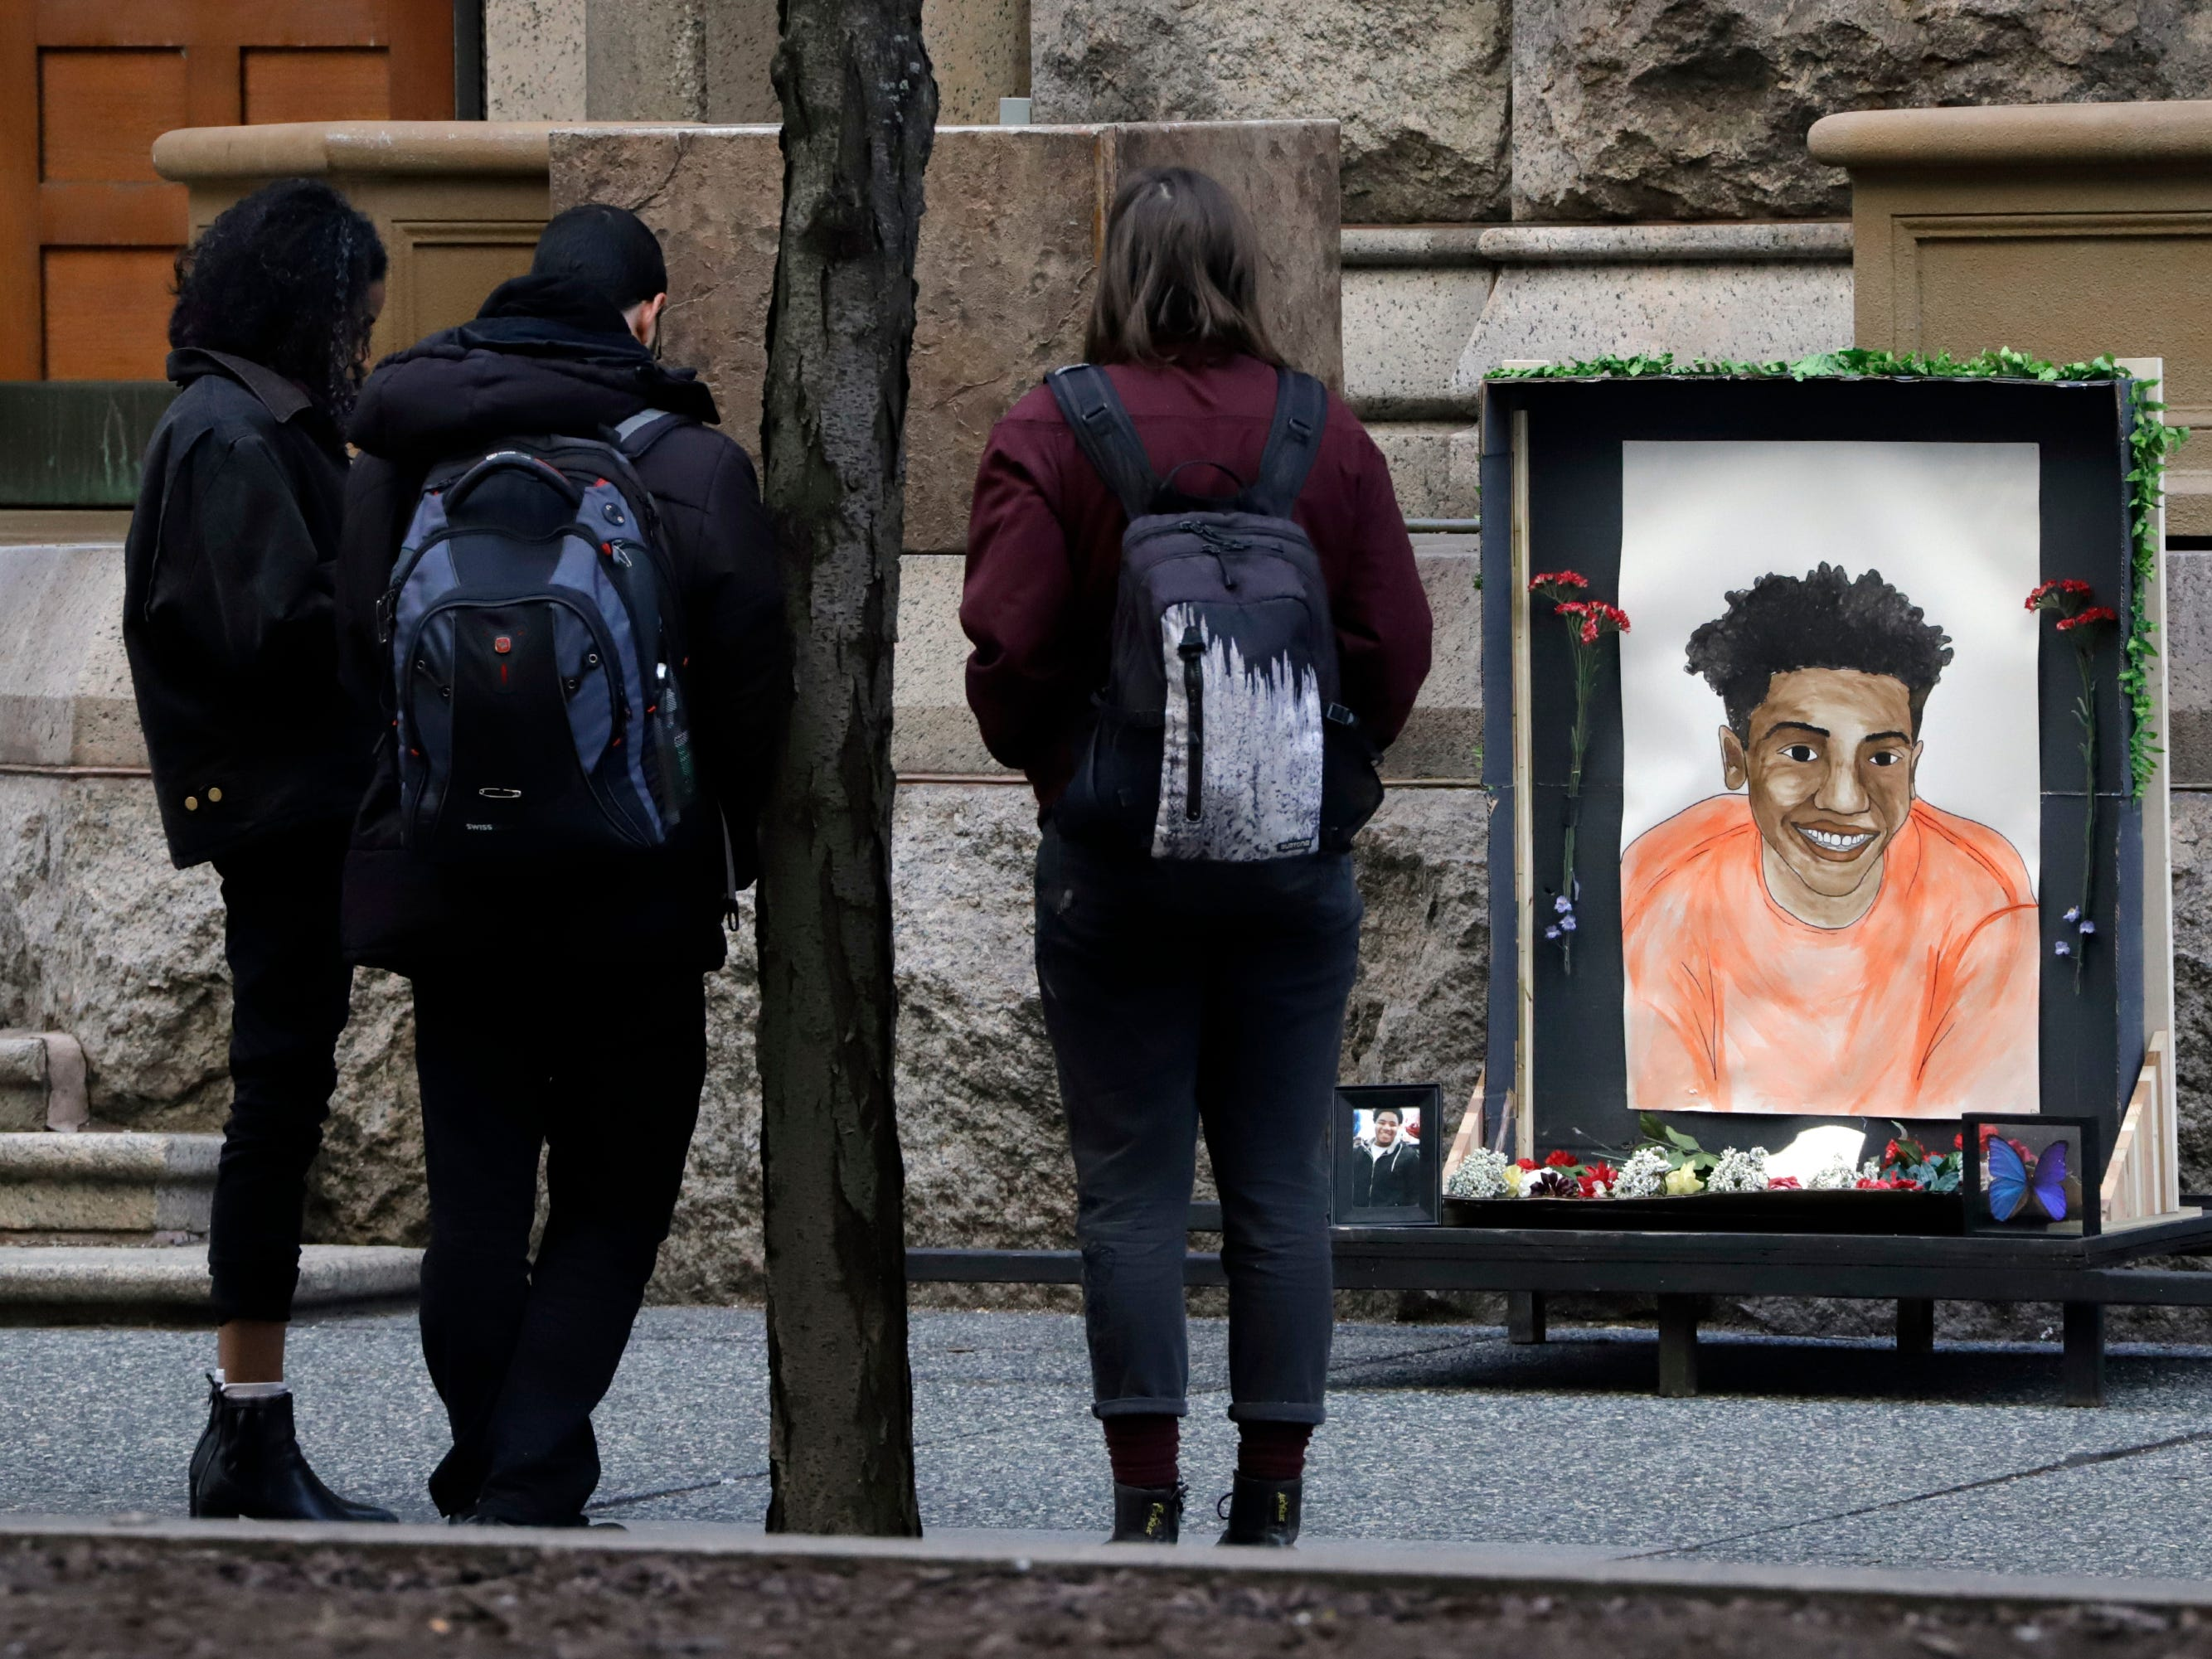 Antwon Rose verdict supports double standard in police conduct, bias: Readers sound off